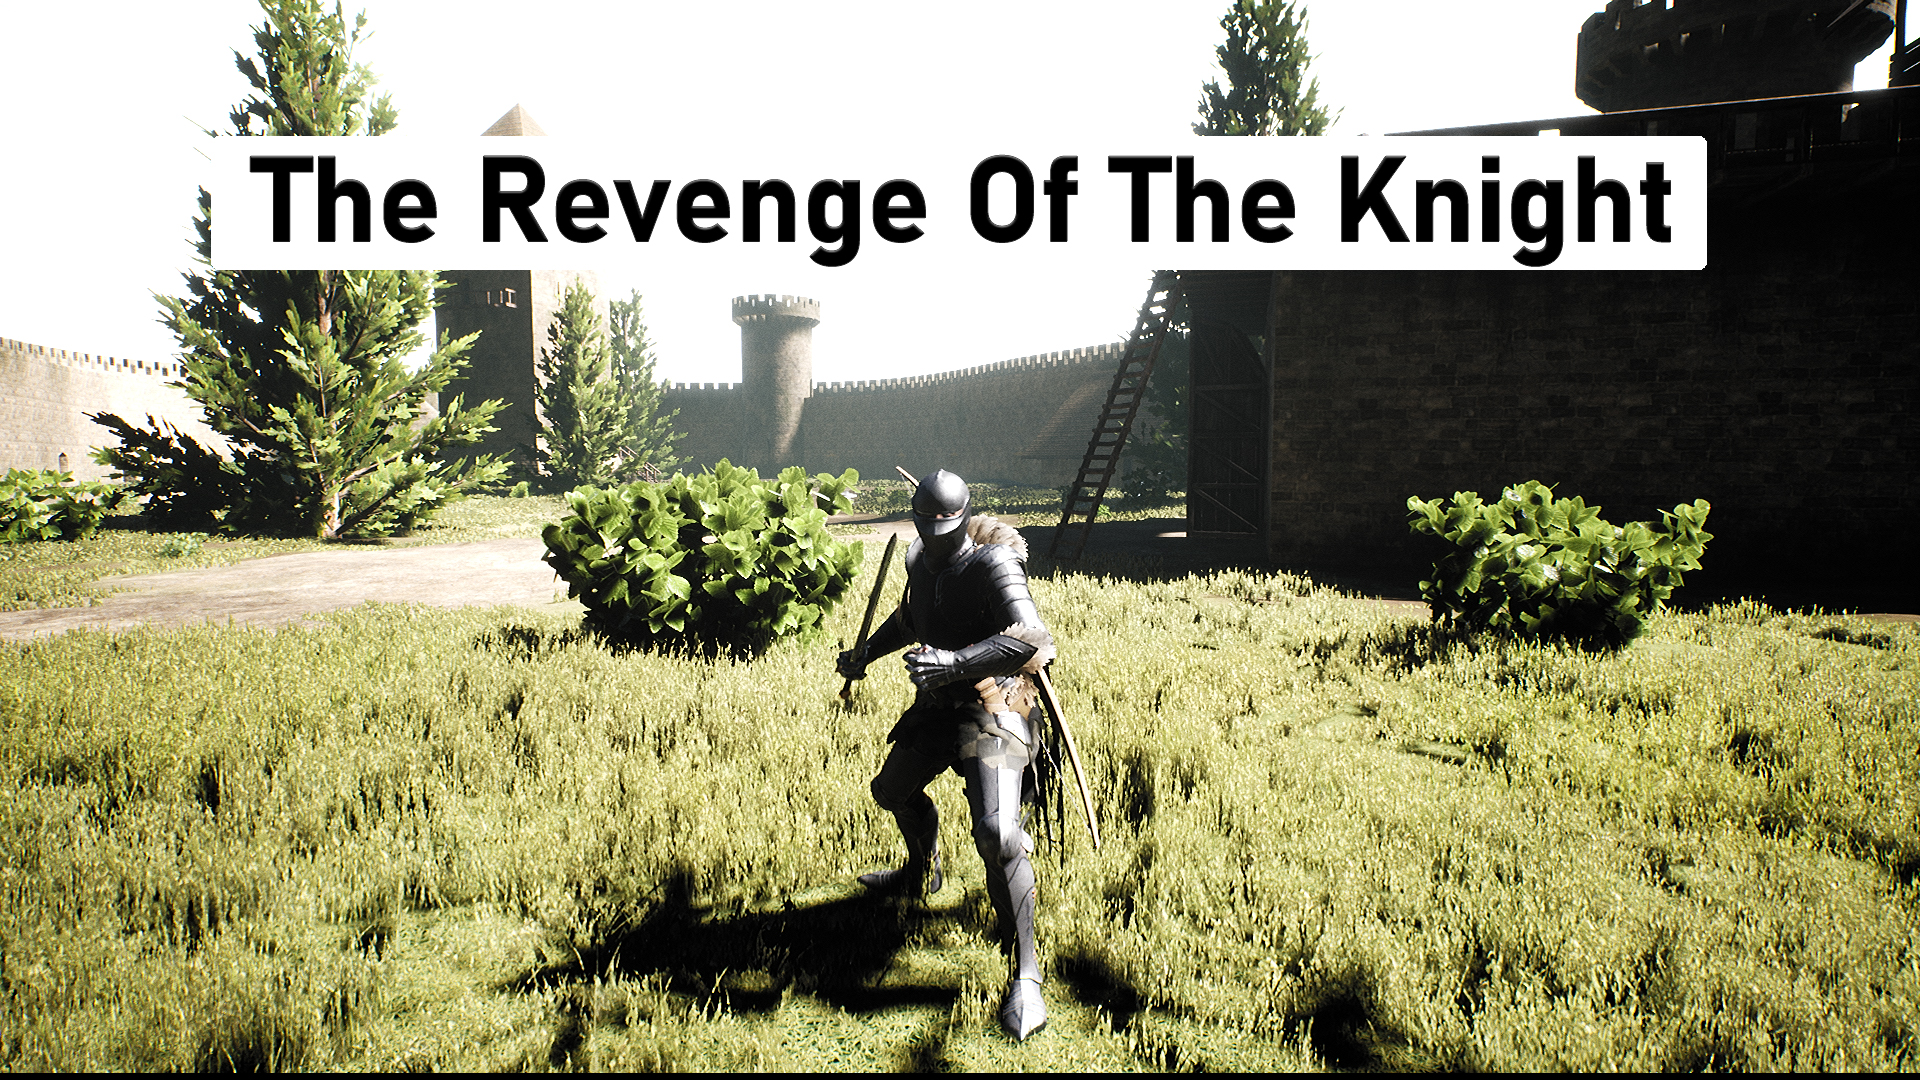 The Revenge Of The Knight